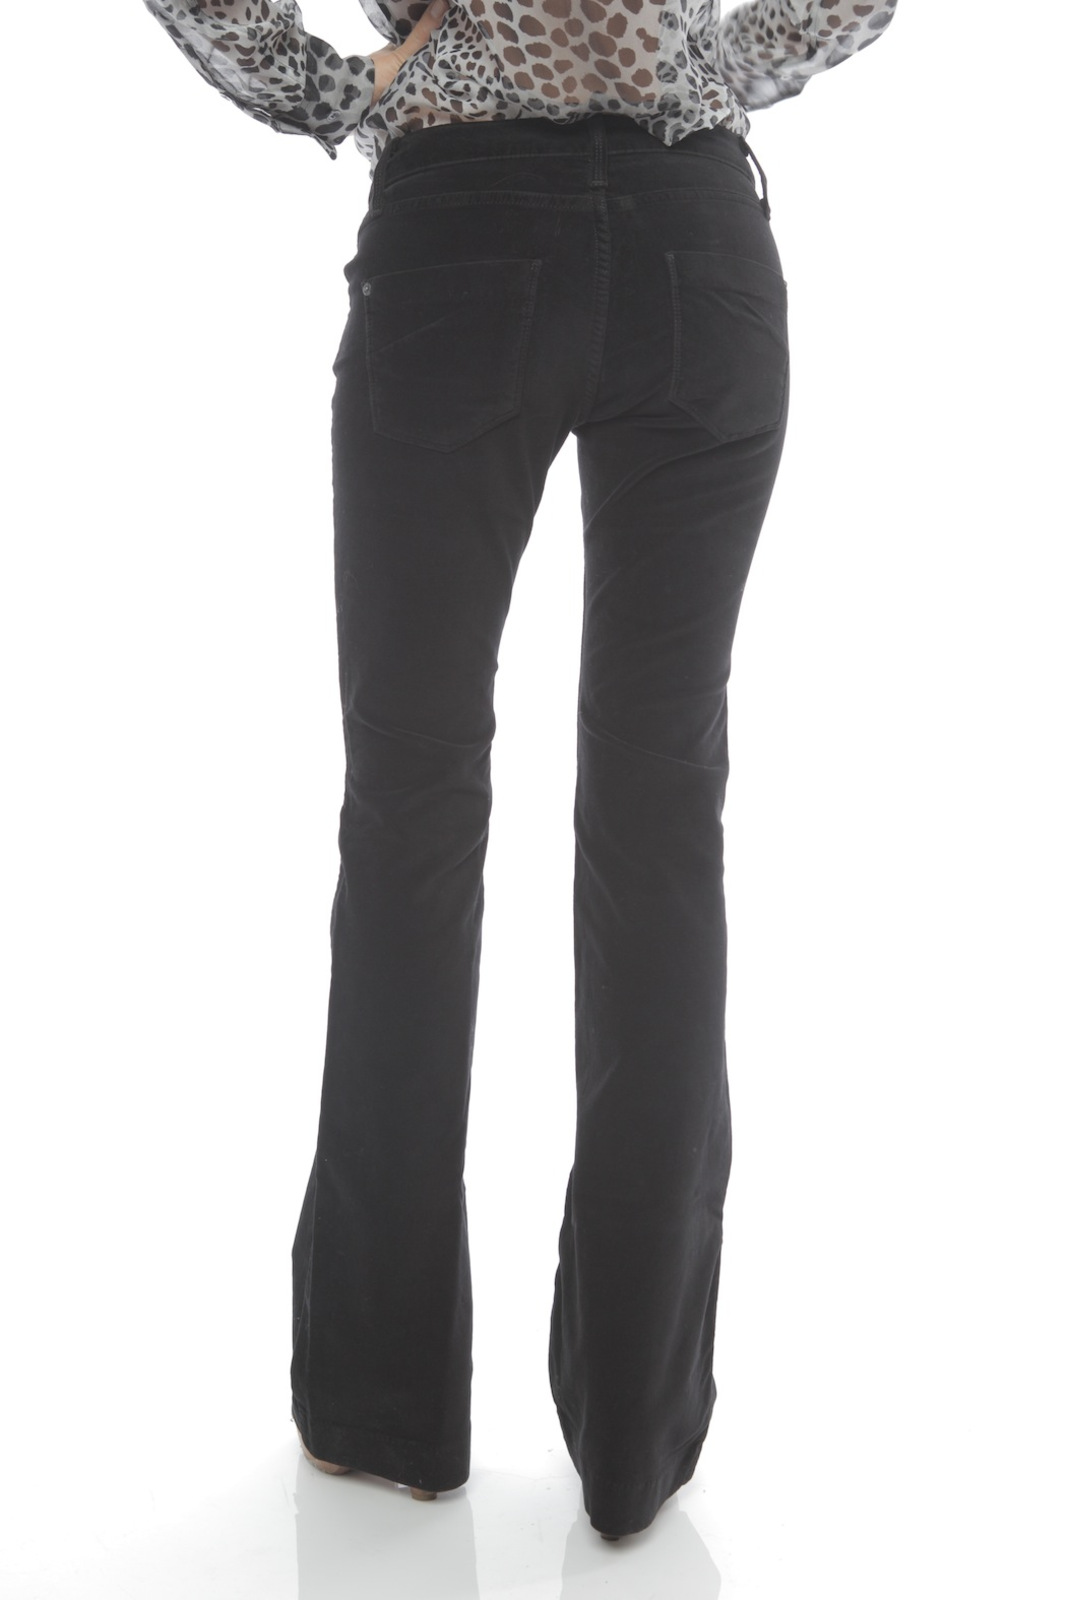 James Jeans High Rise Flare Jeans - Back Cropped Image